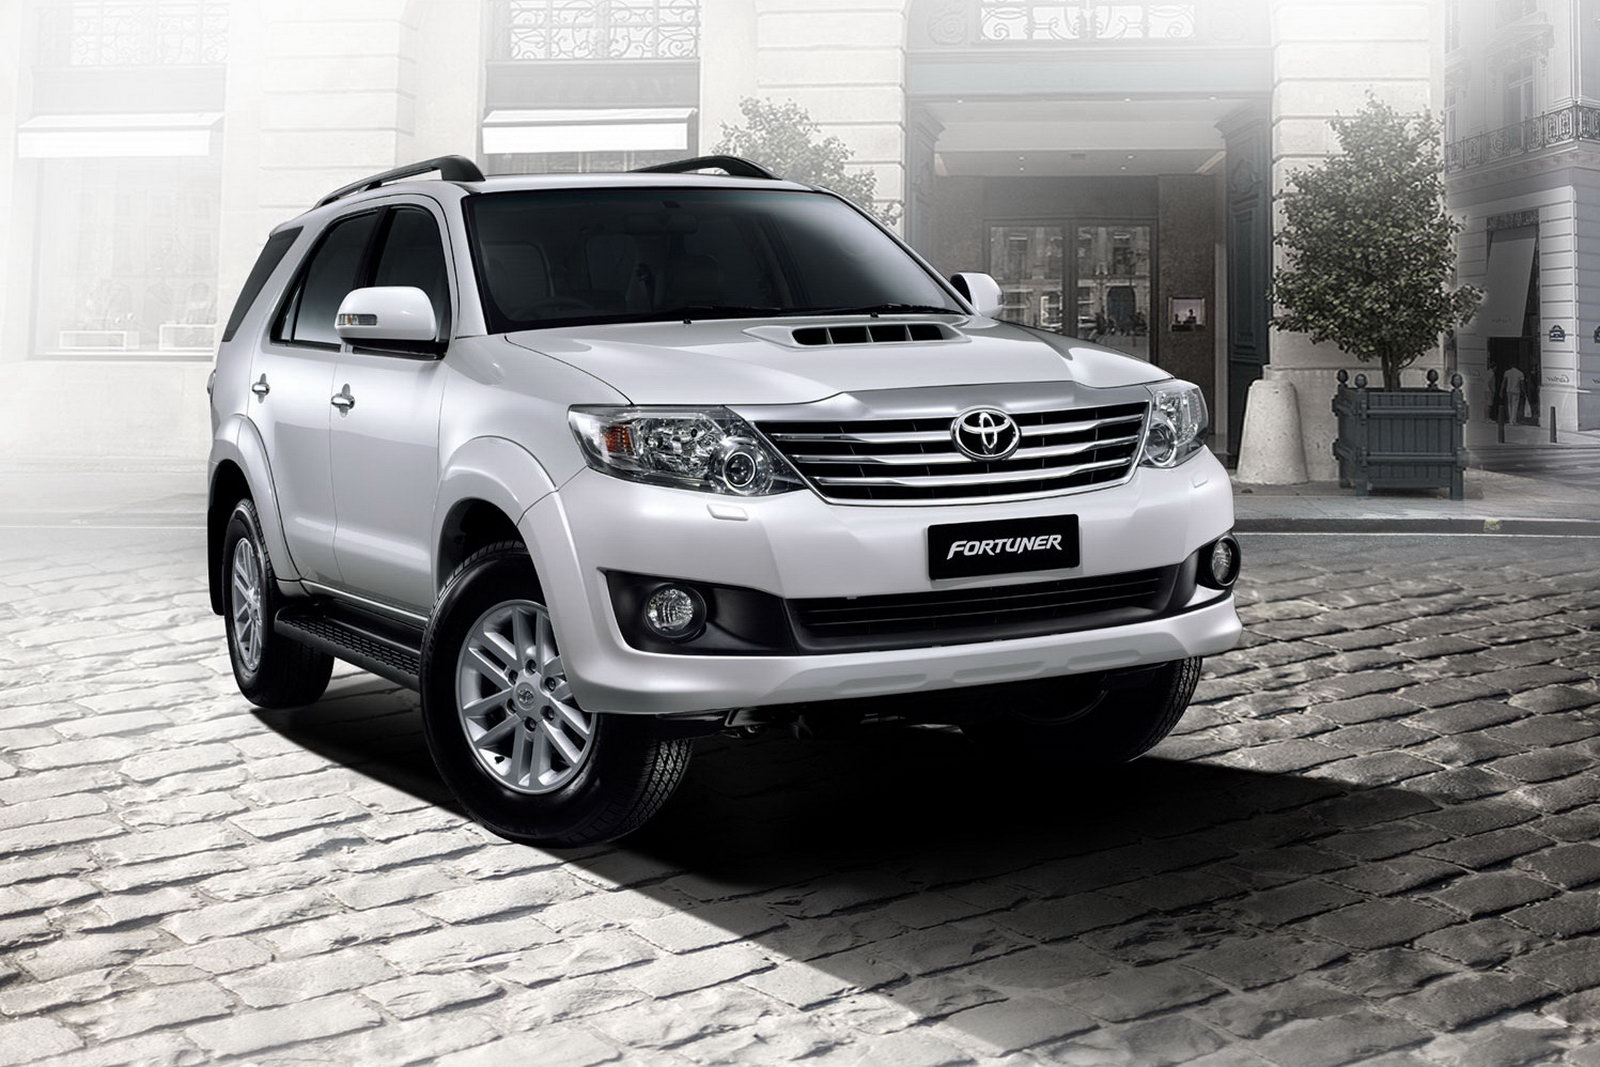 Car Wallpaper Toyota Fortuner Car Hd Wallpaper